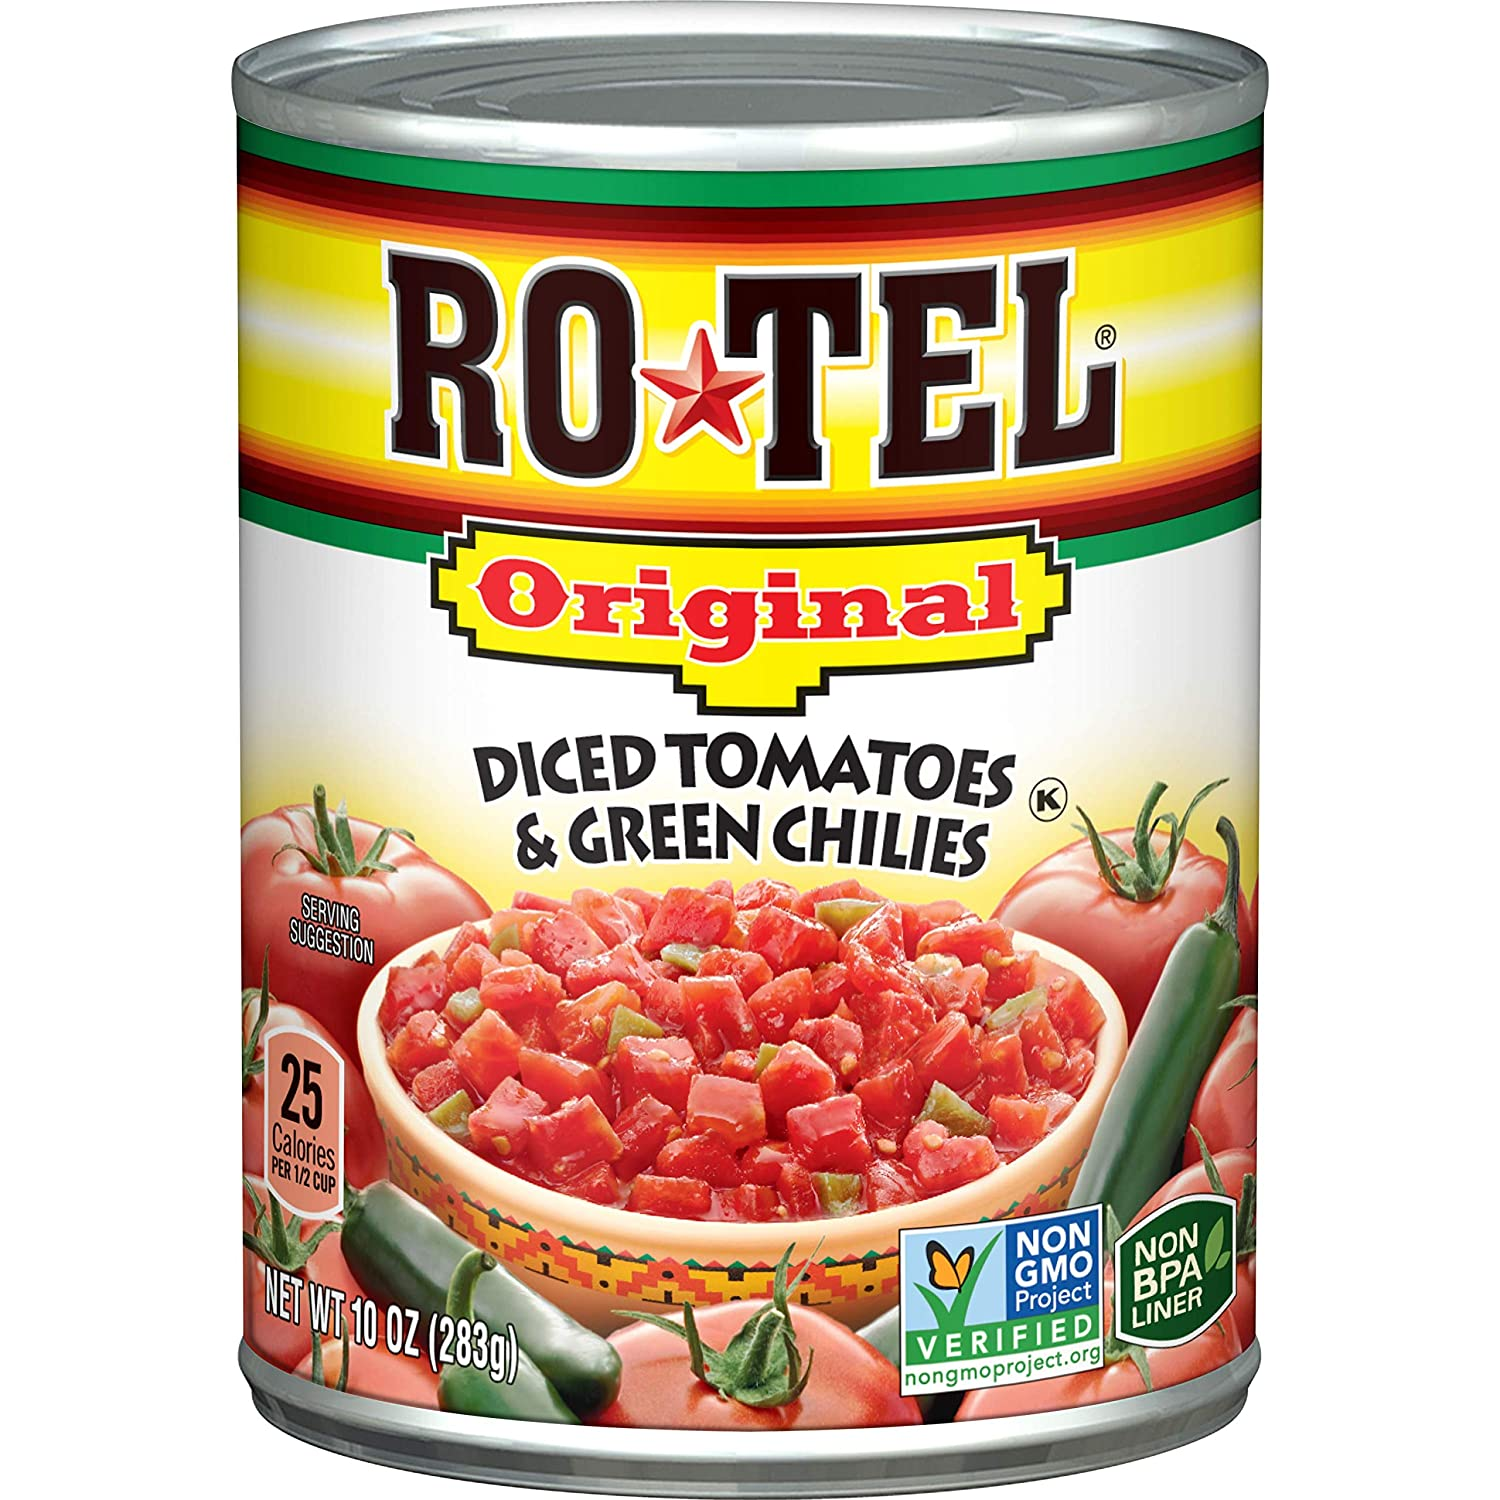 ROTEL Original Diced Tomatoes and Green Chilies, Keto Friendly, 10 Ounce, 24 Pack